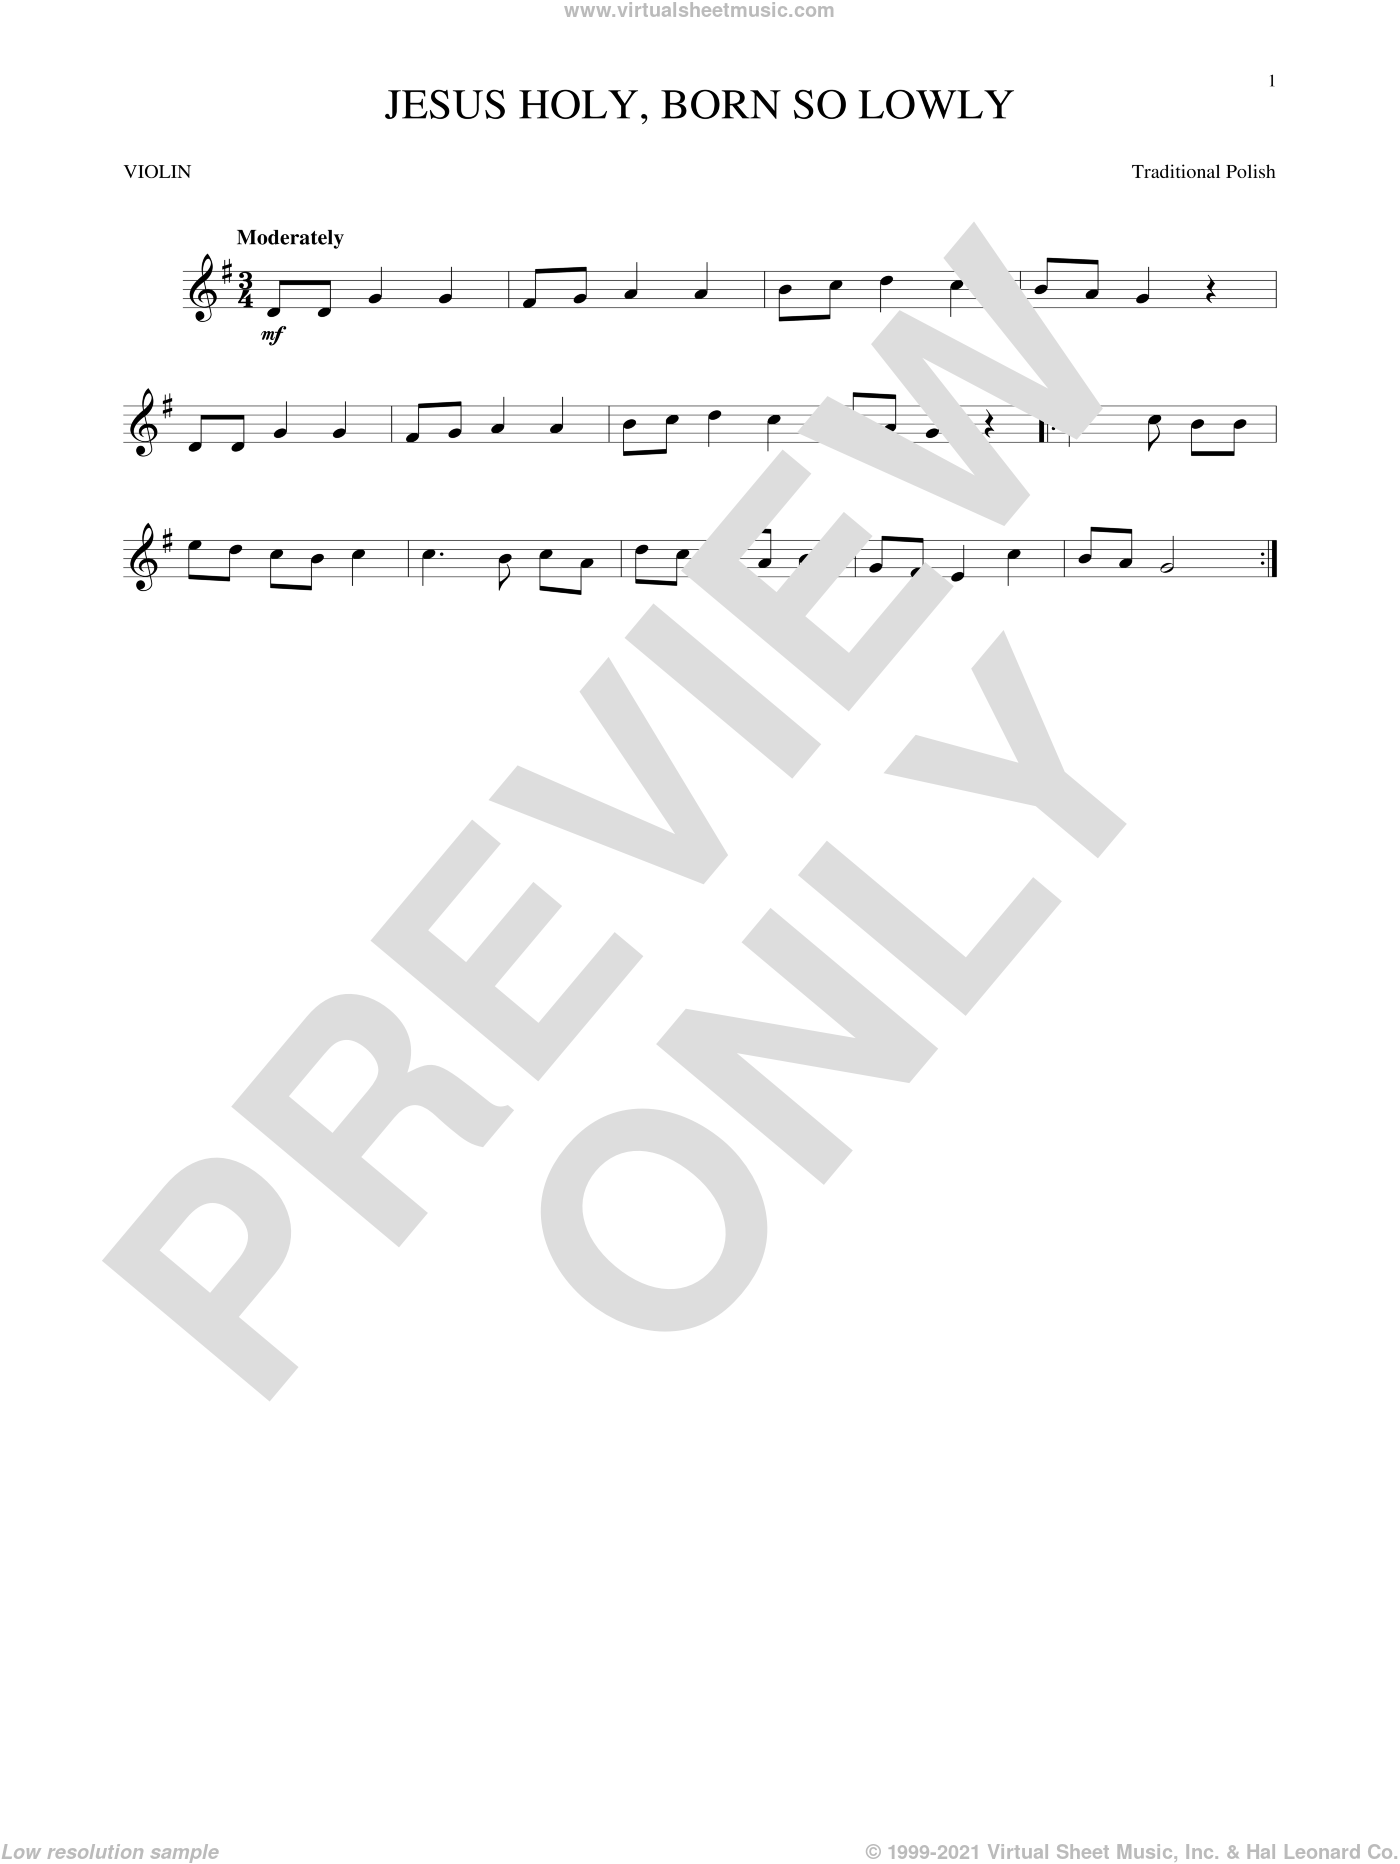 Jesus Holy, Born So Lowly sheet music for violin solo, Christmas carol score, intermediate violin. Score Image Preview.